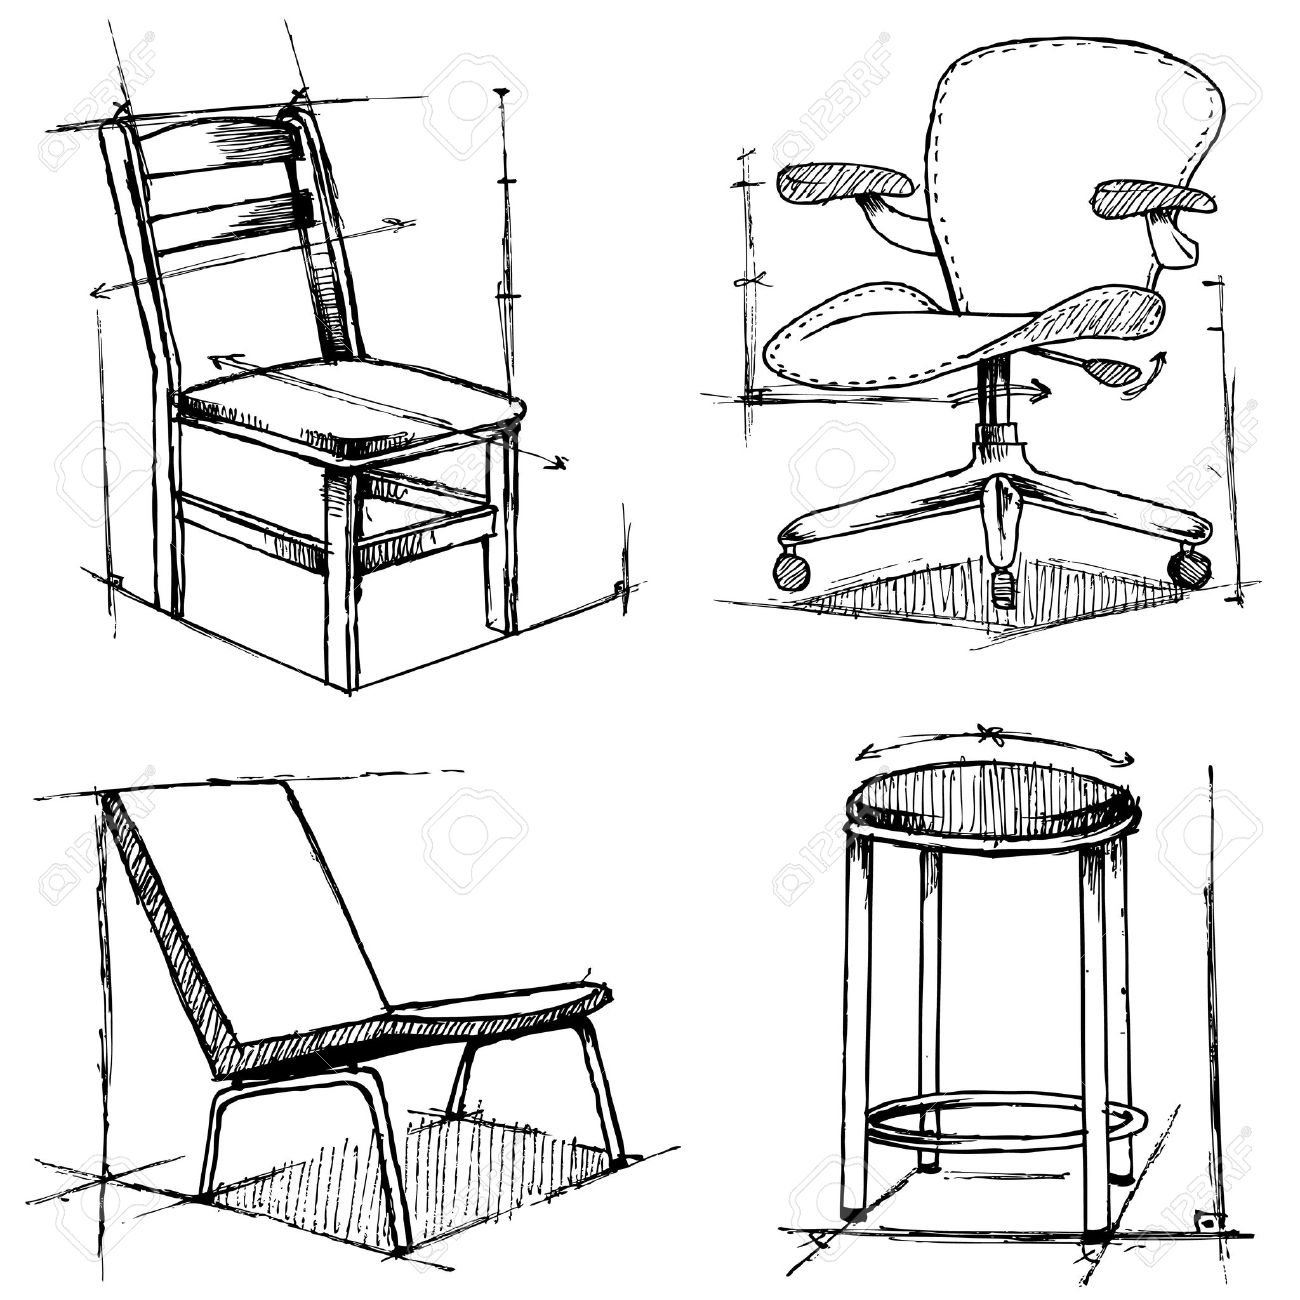 Modern Furniture Drawings chairs drawings royalty free cliparts, vectors, and stock